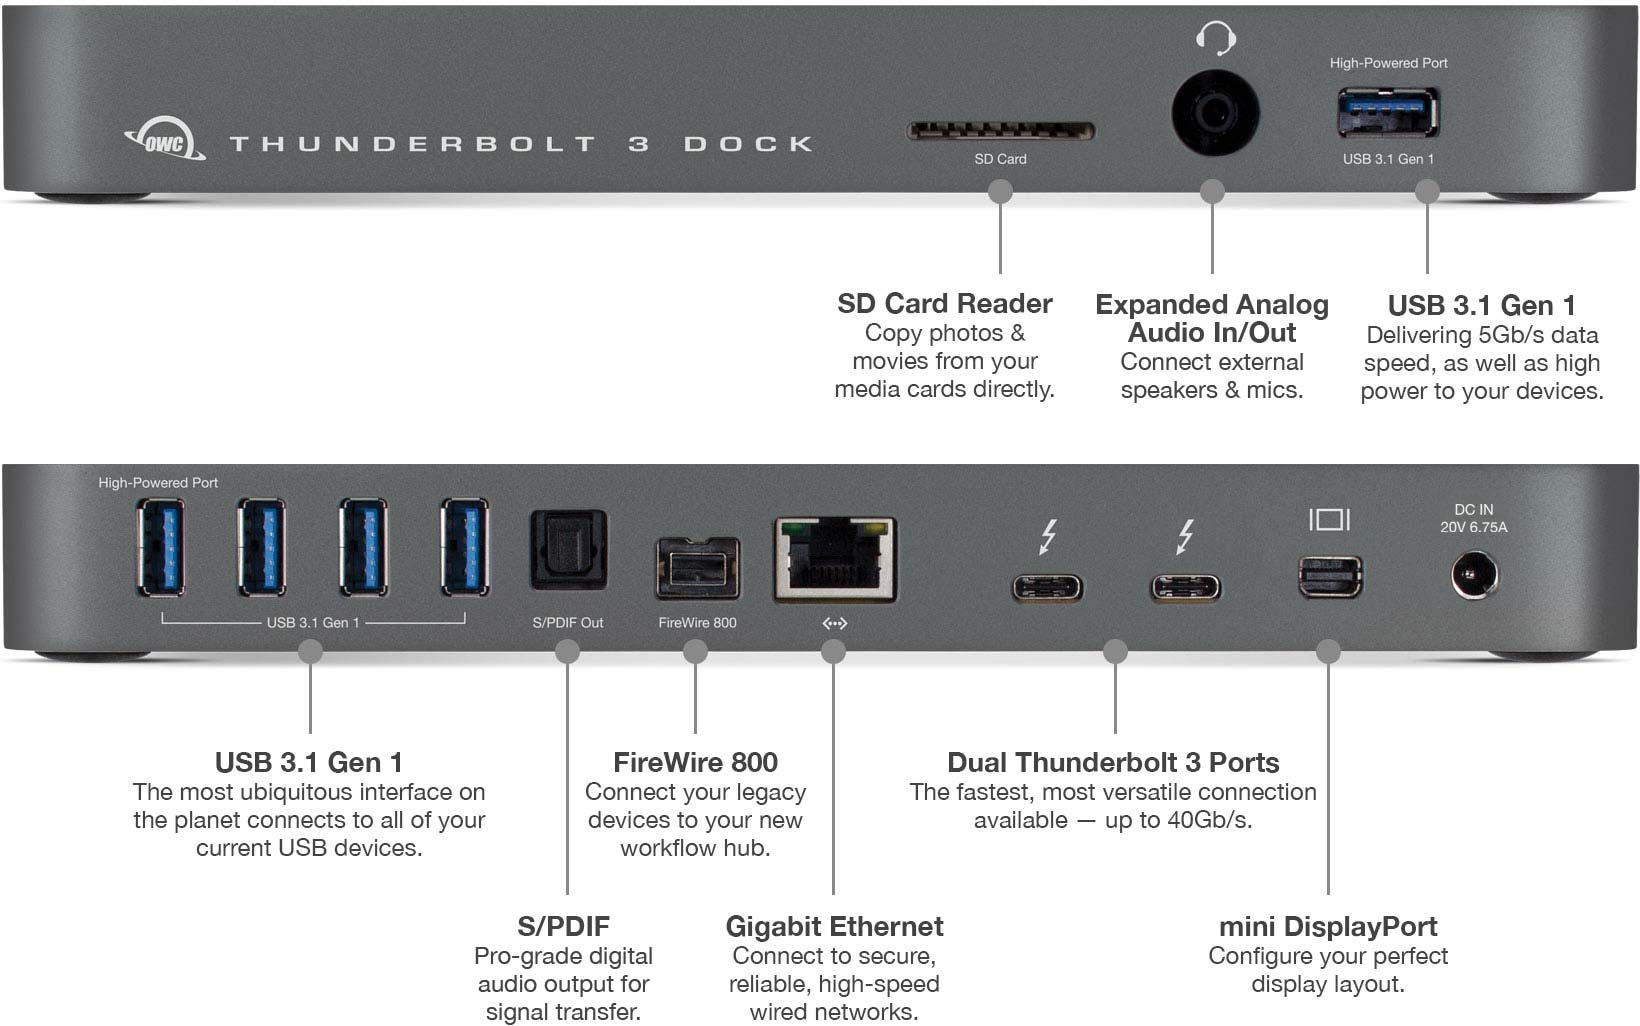 Owc thunderbolt 3 dock - Is the thunderbolt port a mini displayport ...